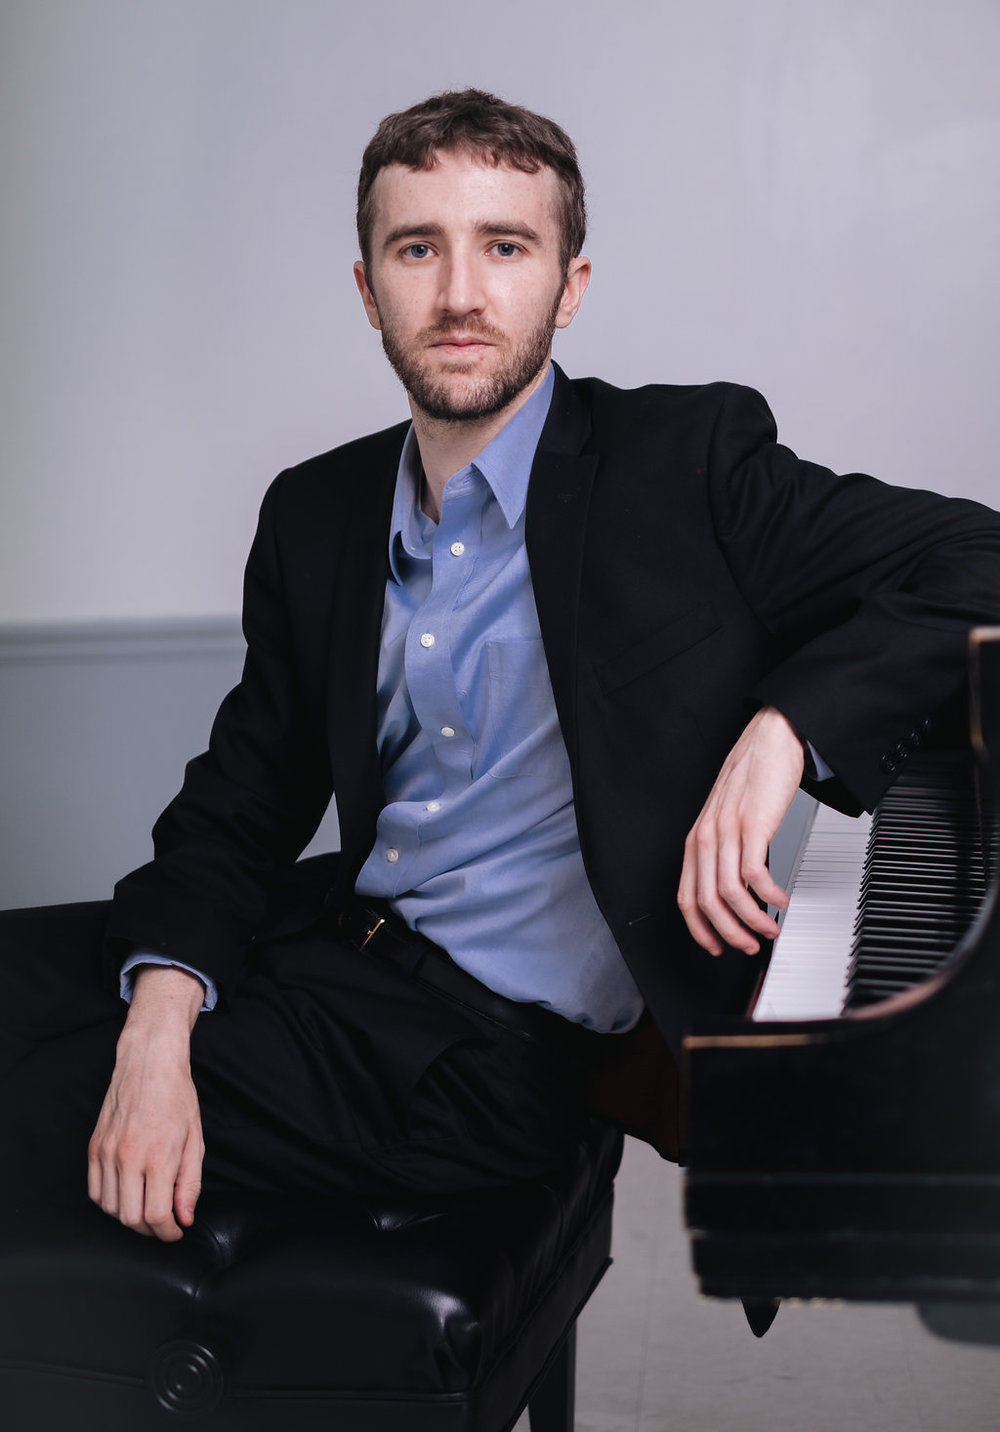 Sam Post, piano, composer